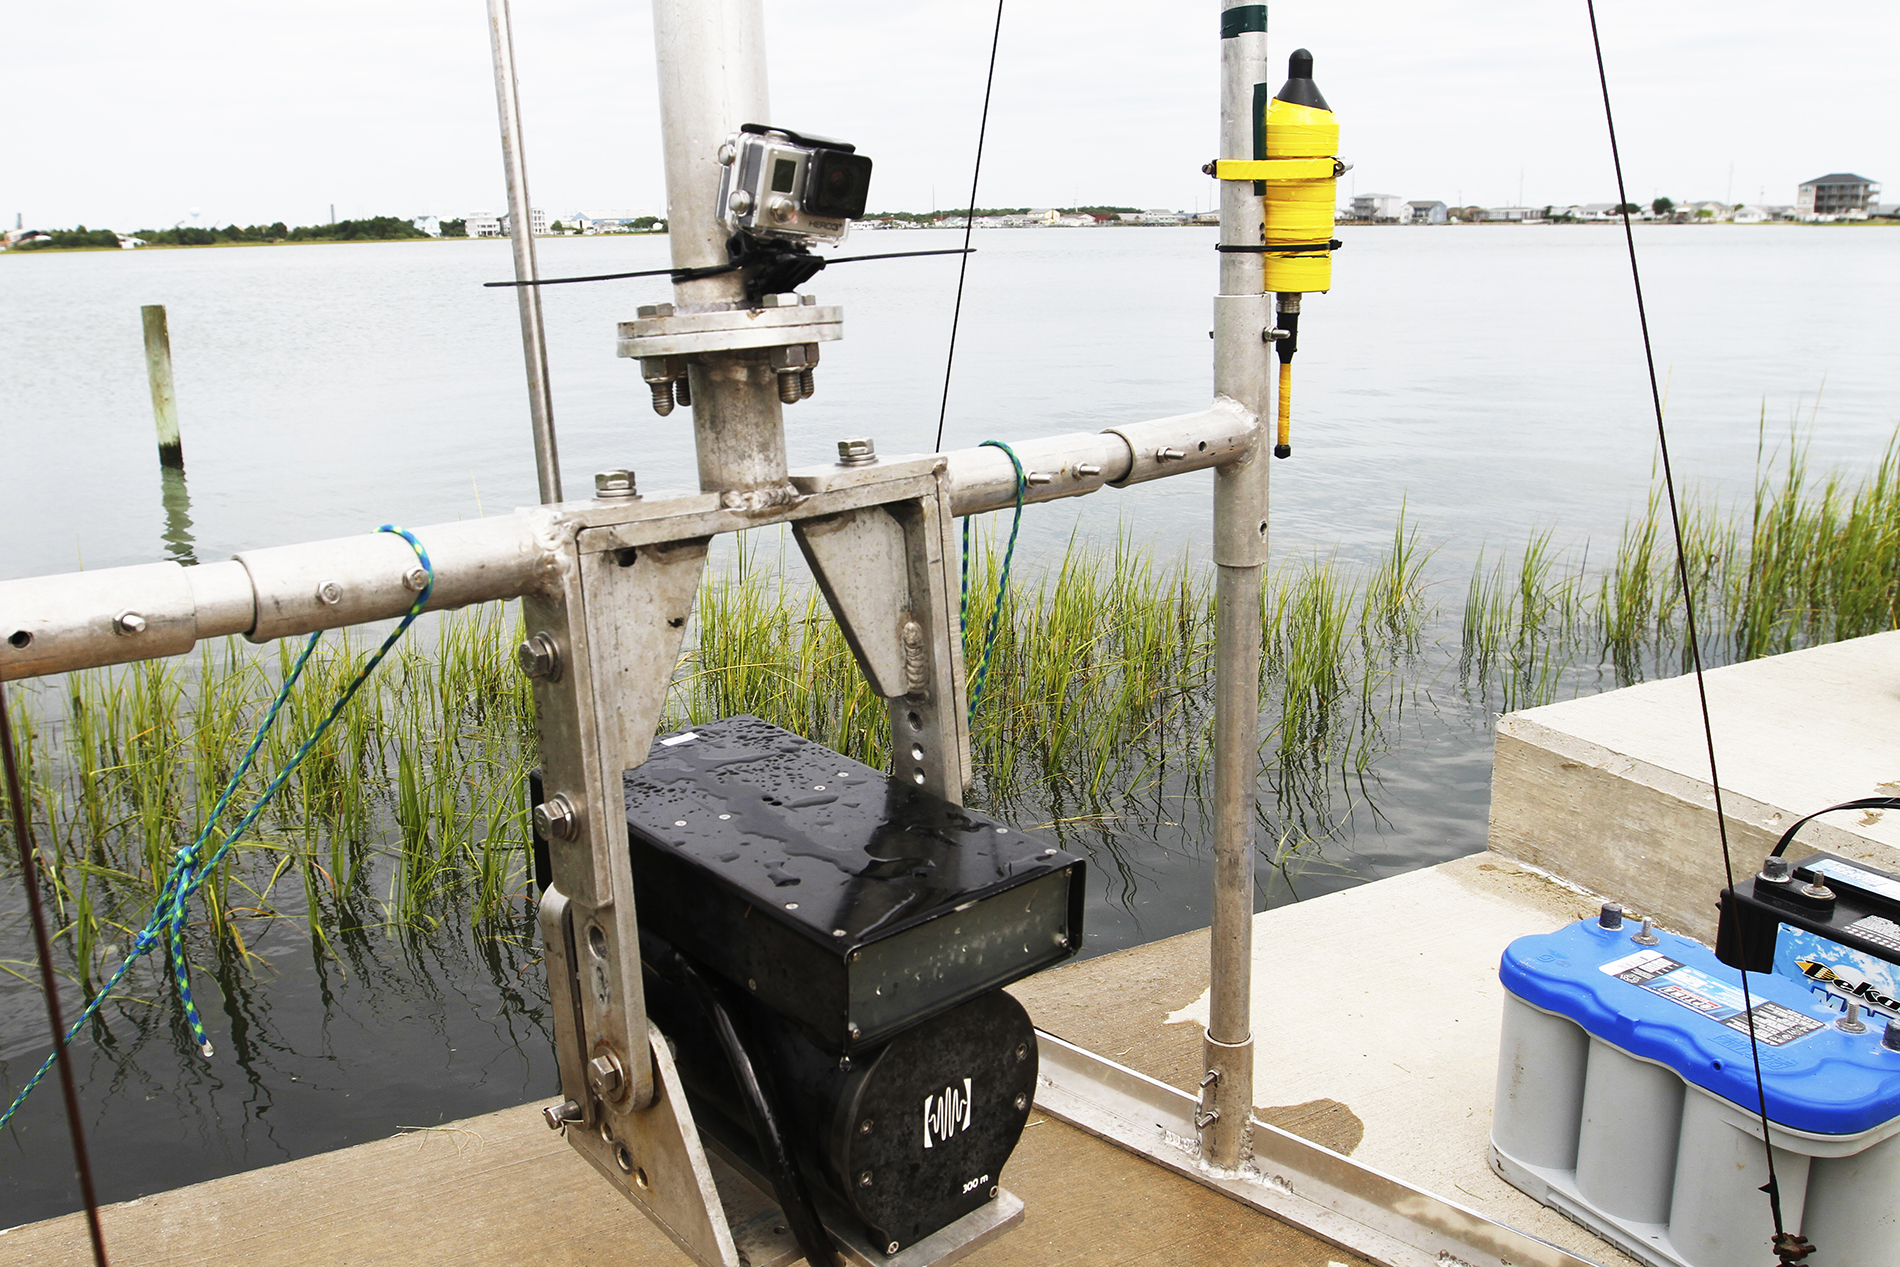 "The metal rig allows the DIDSON (an acoustic camera) to be suspended in the water. The battery pack powers the DIDSON, while a mounted GoPro camera captures the complete lack of visibility in the water. The yellow hydrophone records the varied soundscape of the marsh. ""Some fish and crustaceans make really unique sounds,"" Smith says. ""Snapping shrimp make a noise like someone snapping their fingers."" Capturing those sounds is another way to measure the amount of diversity and activity in the marsh."